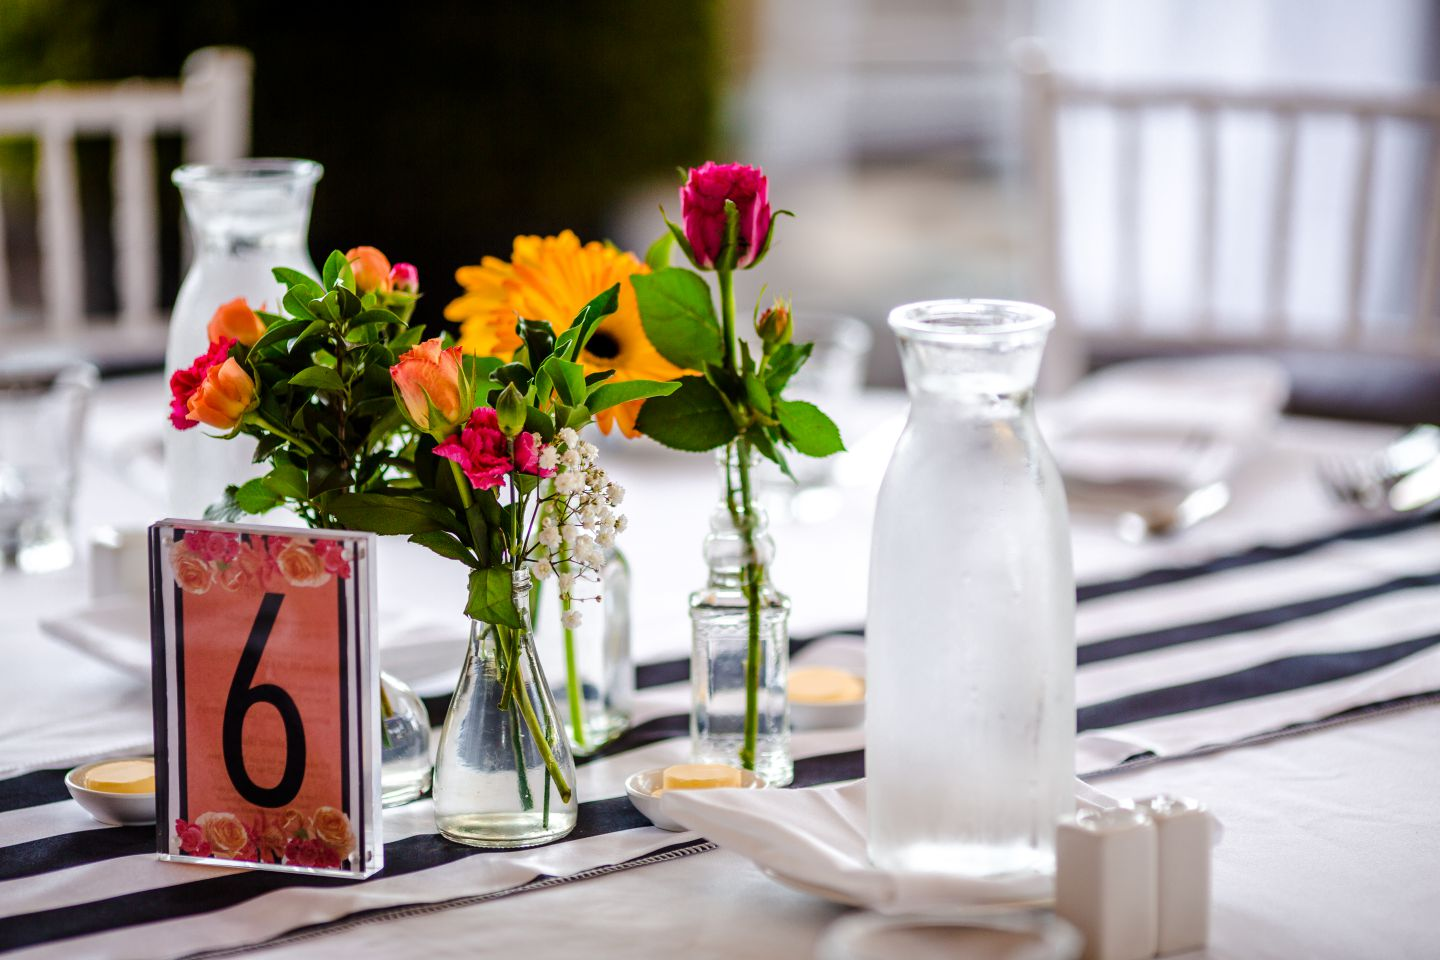 A table decorated and ready for people at The Mon Komo Melbourne Cup event day.